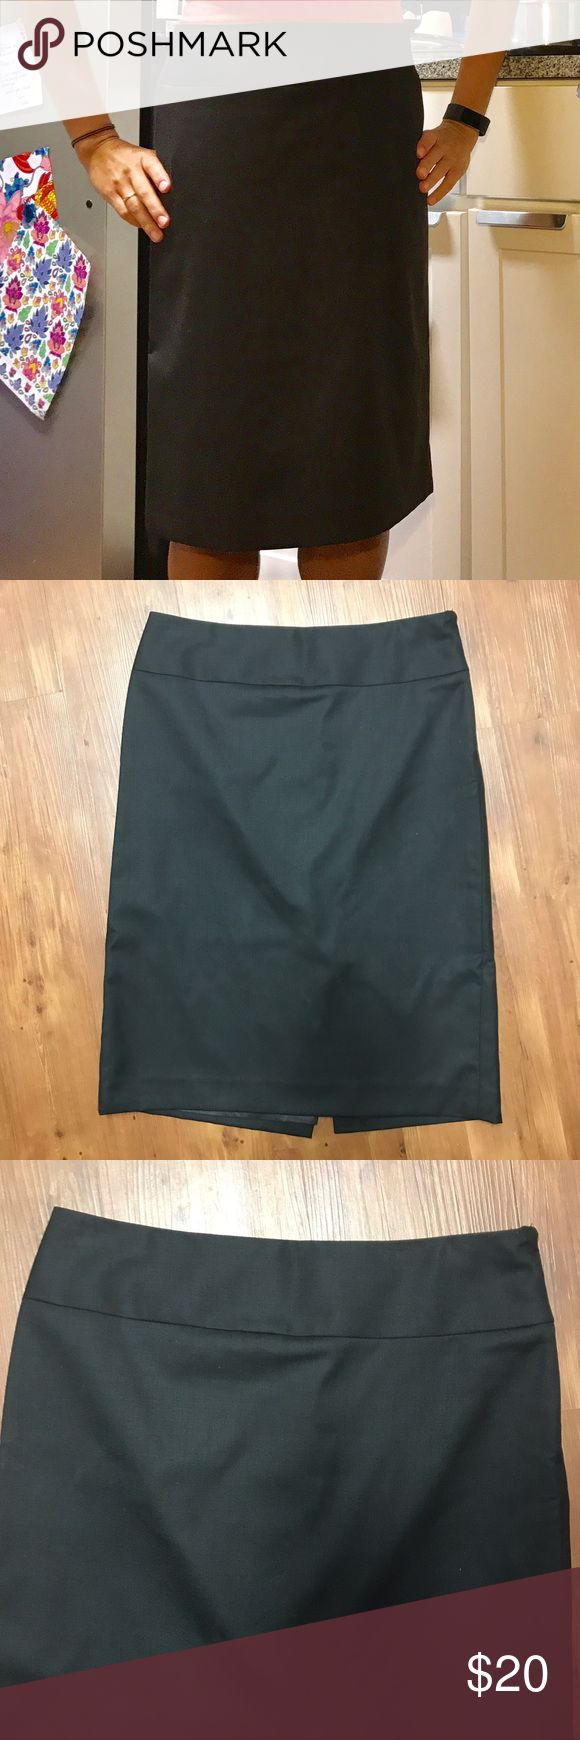 Banana Republic brown pencil skirt, size 0 Like new Banana Republic brown pencil skirt! Great professional wear. This is a bargain! Size 0. Ships from a smoke-free, pet-free home. Banana Republic Skirts Pencil